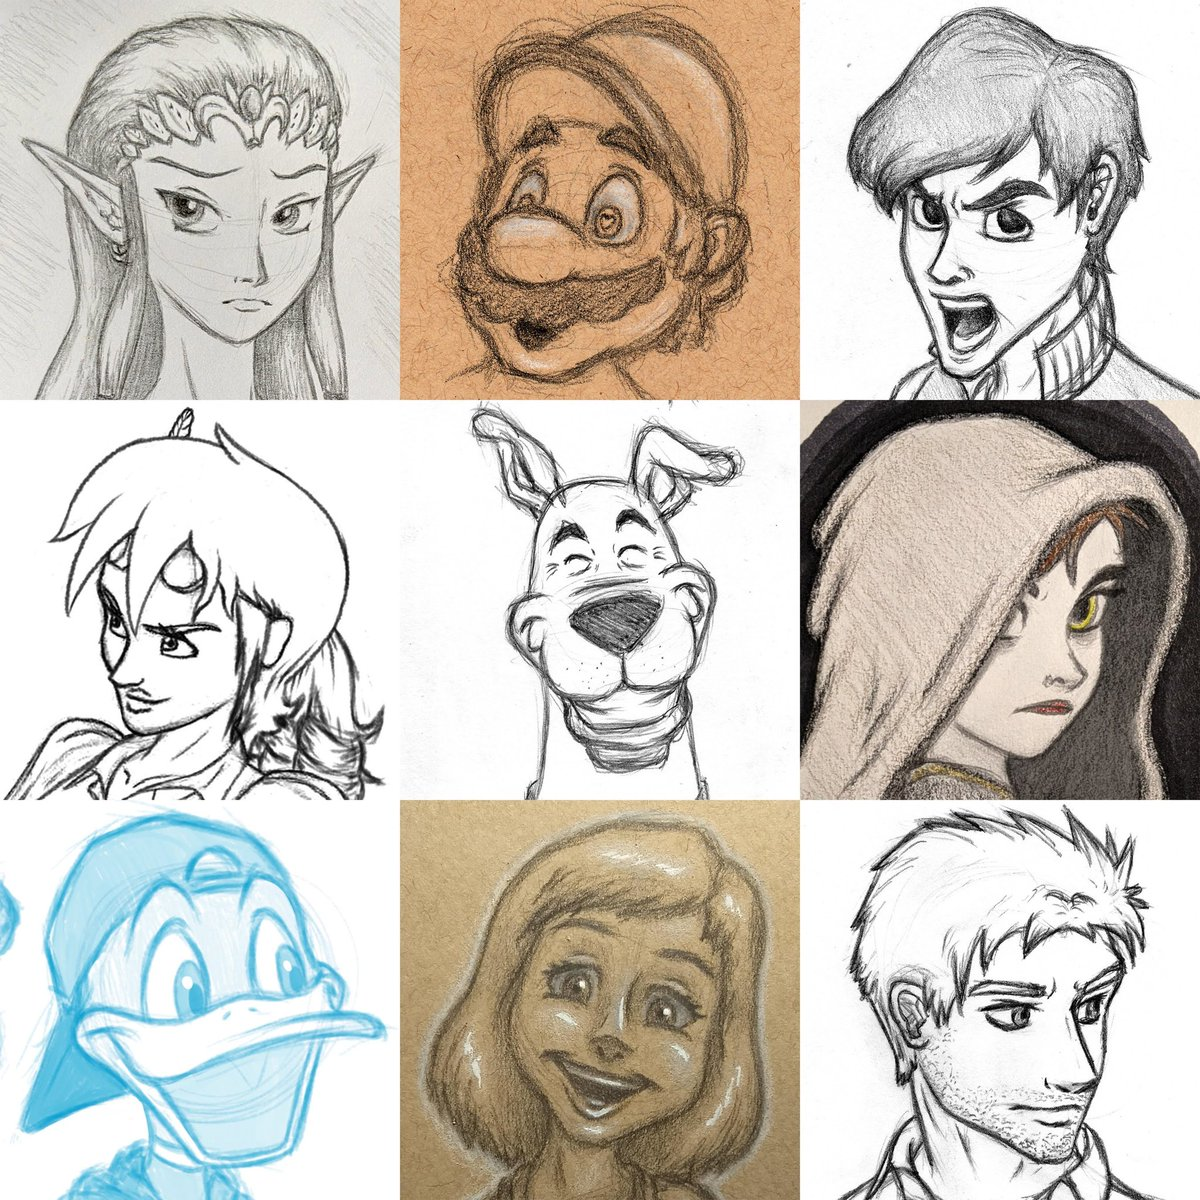 Have some more faces. Now in sketch edition!  #faceyourart #faceyourart2020 #faceyourartchallenge #IndieArtists #keepmovingforward pic.twitter.com/3weXkpAaTi